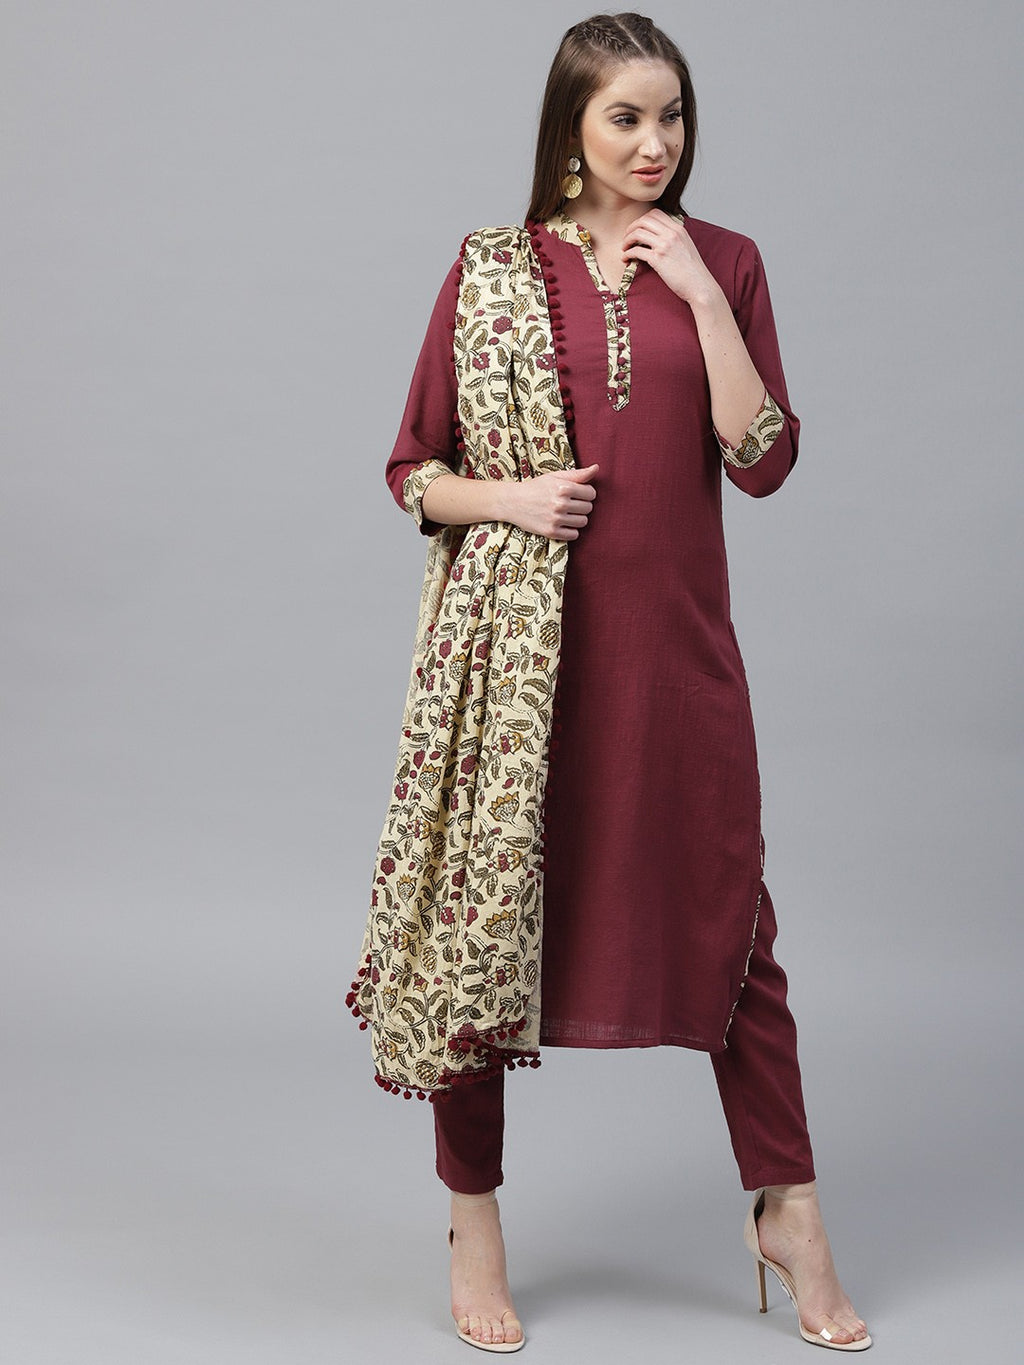 Maroon Solid Straight Kurta With Pant & Printed Dupatta Set (Fully Stitched) | Znx4ever.com